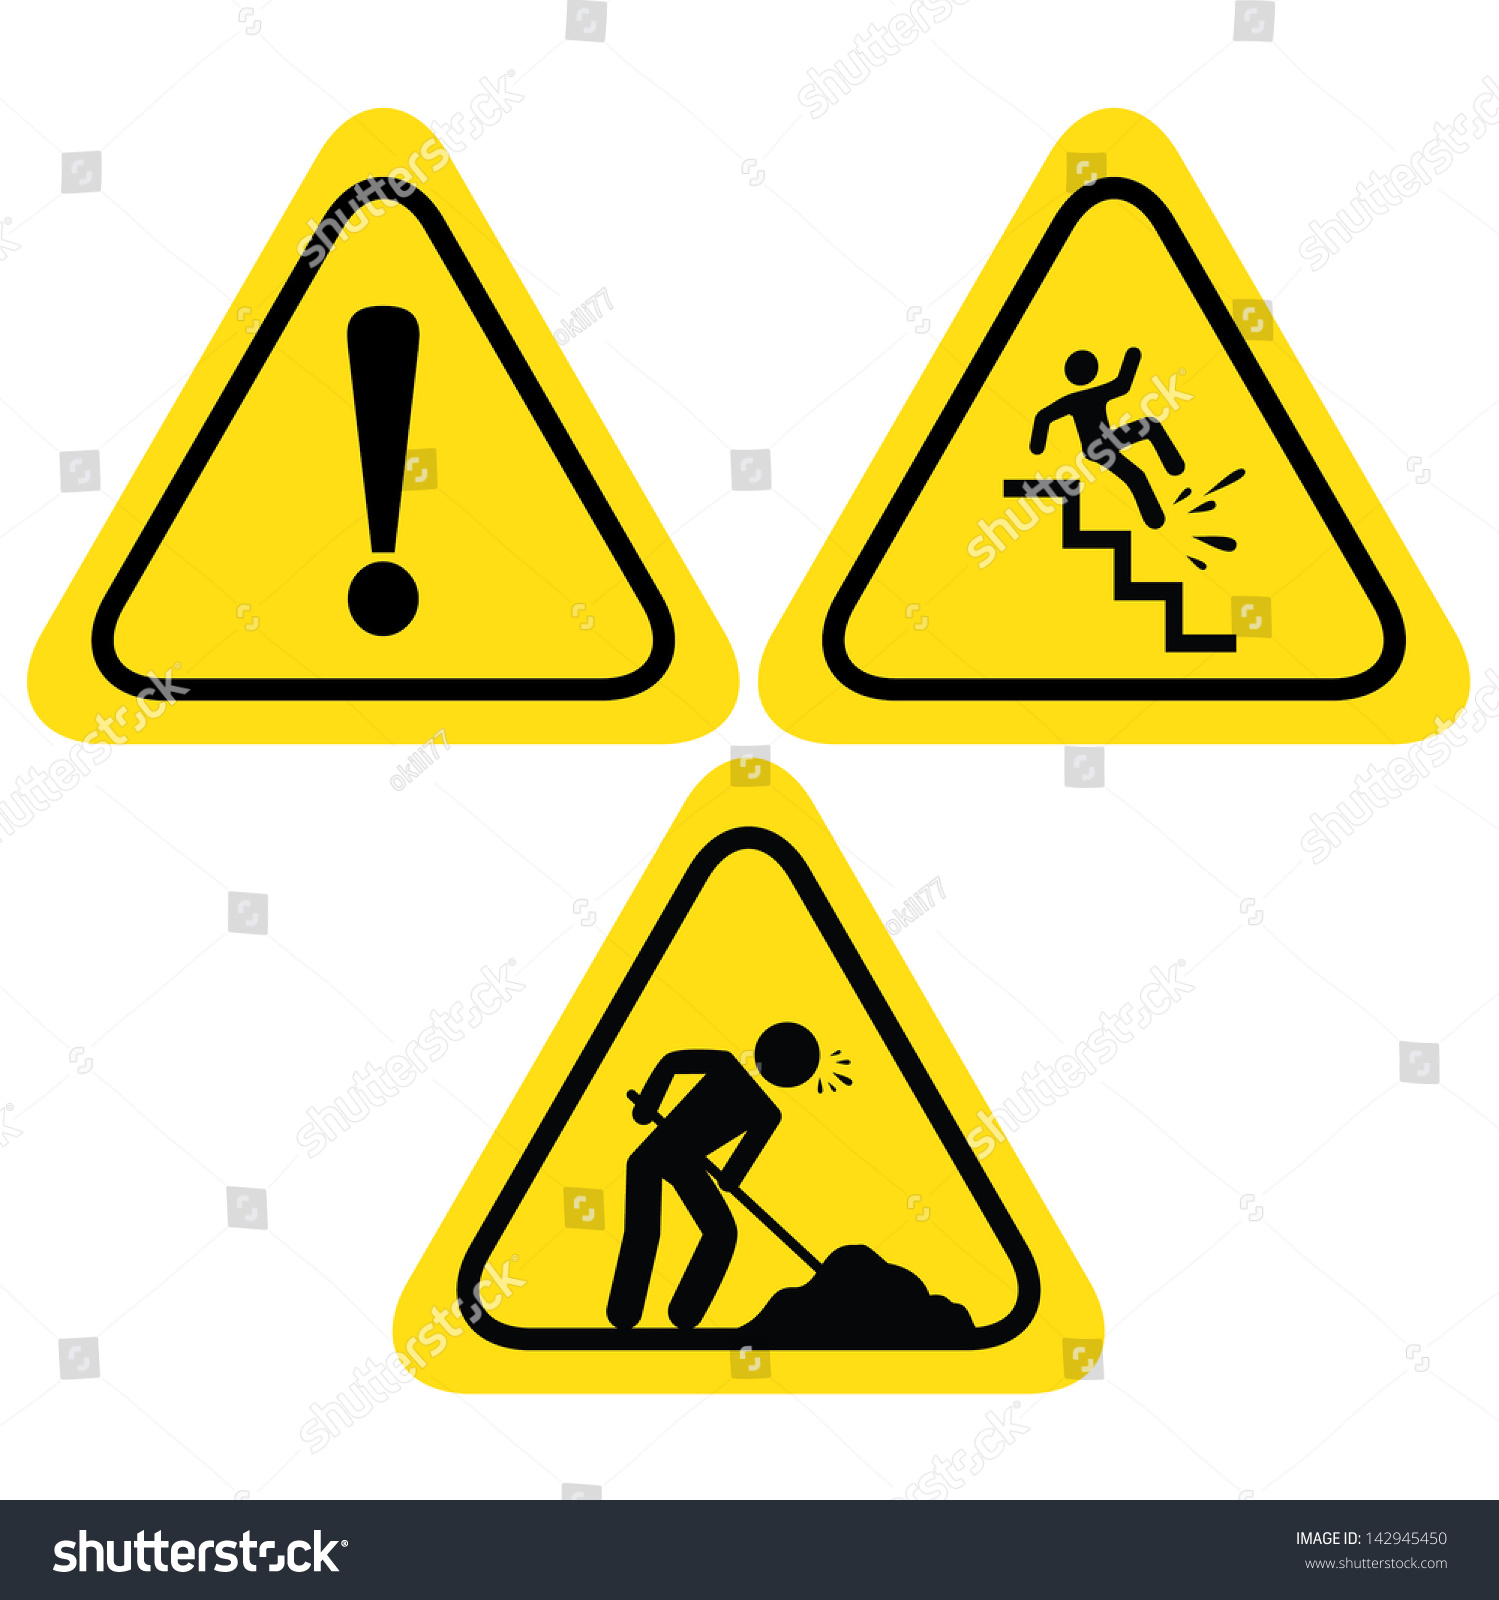 Warning Safety Signs Under Construction Road Stock Vector